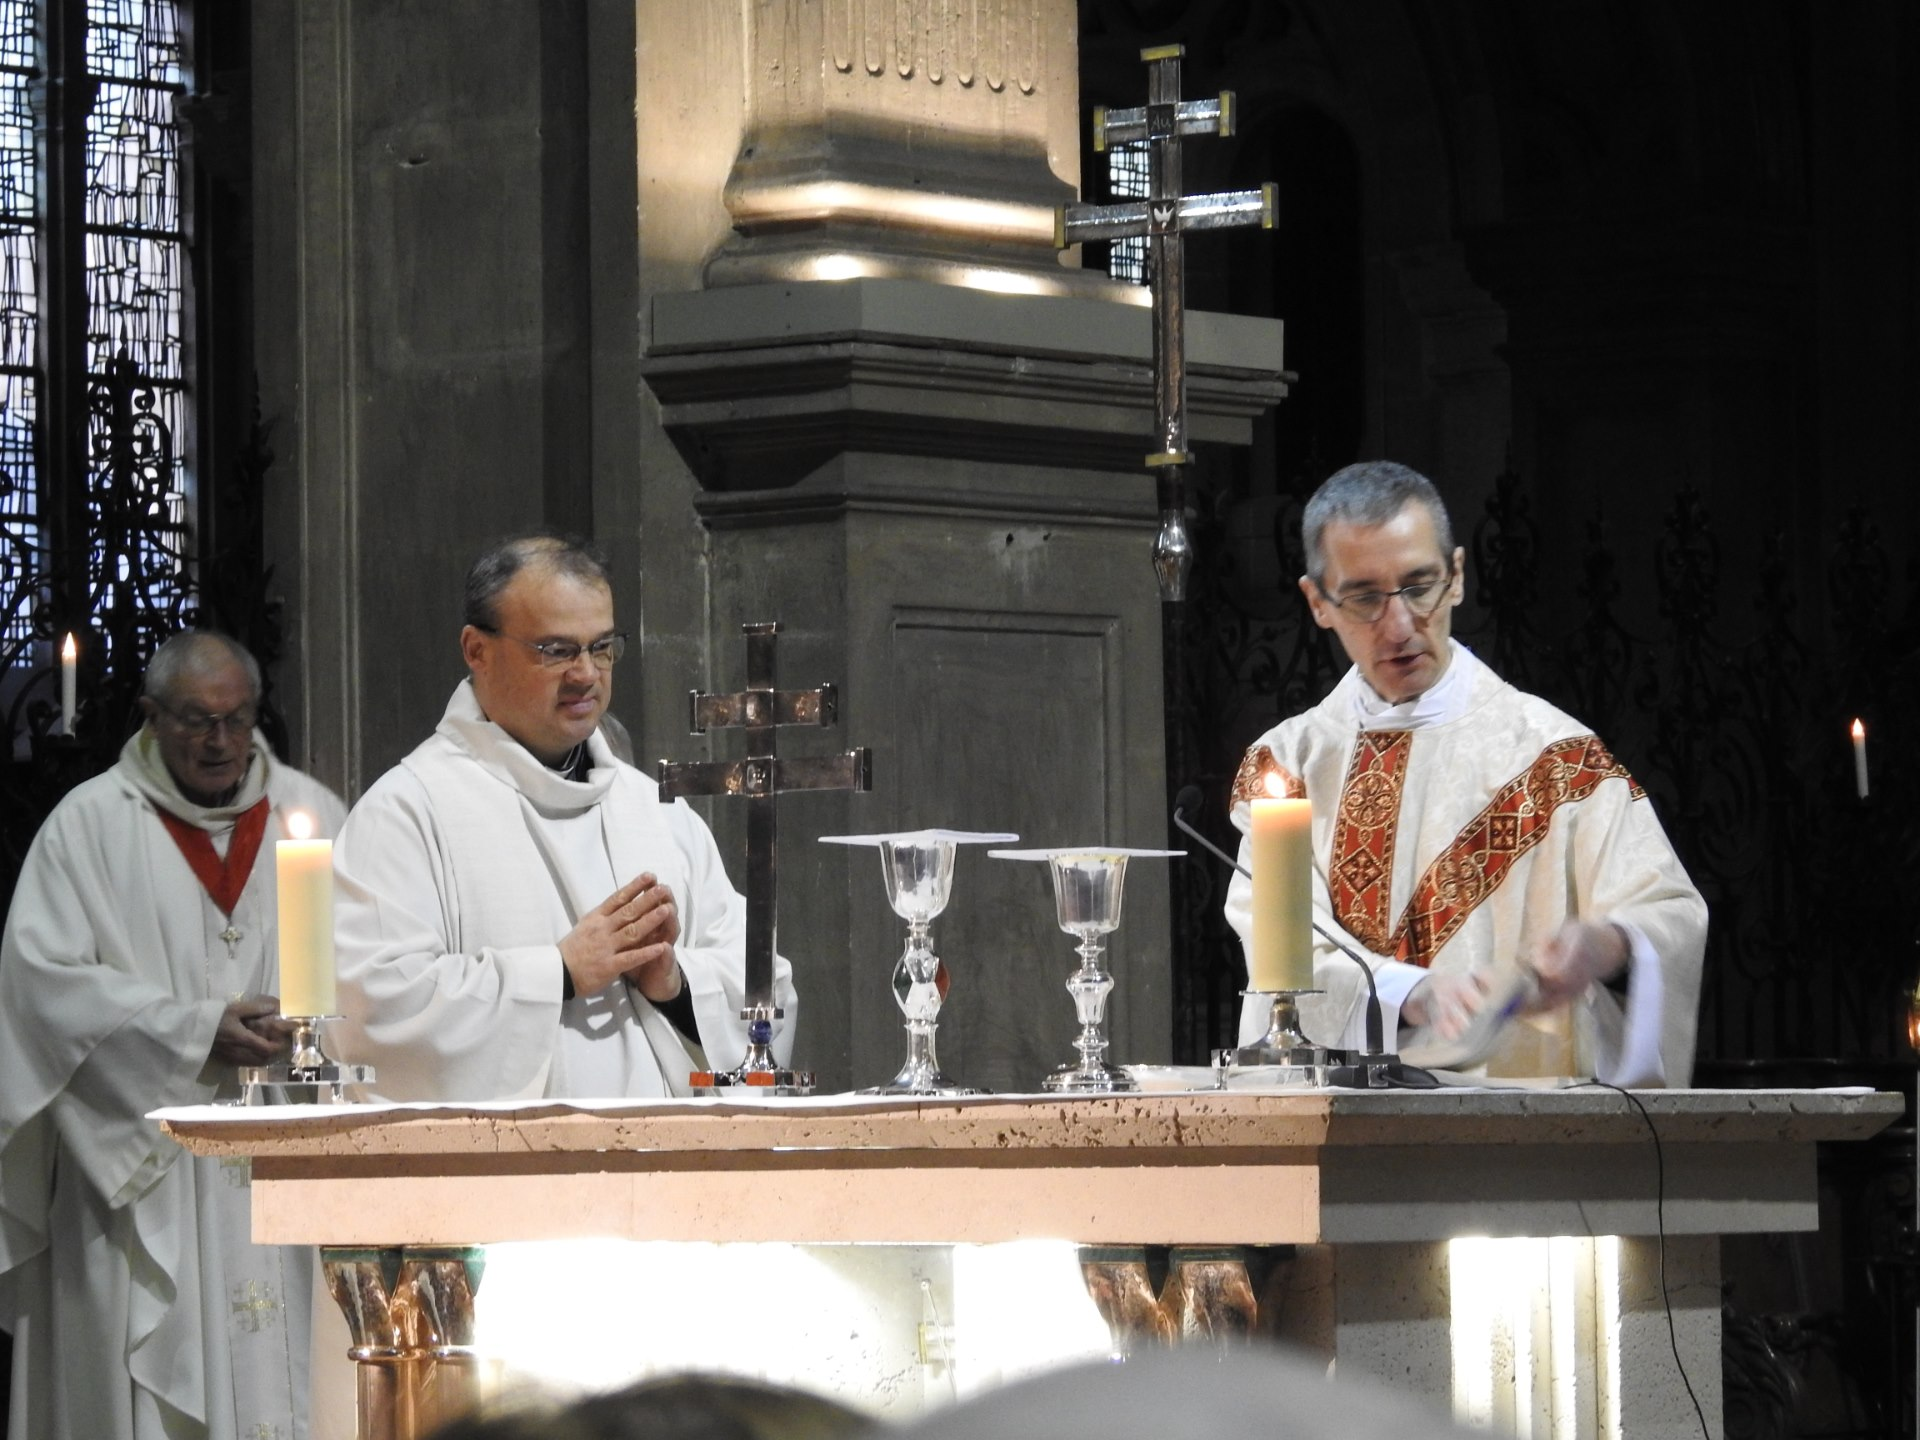 Chapitre Cathedral 2018 10 29 (7)